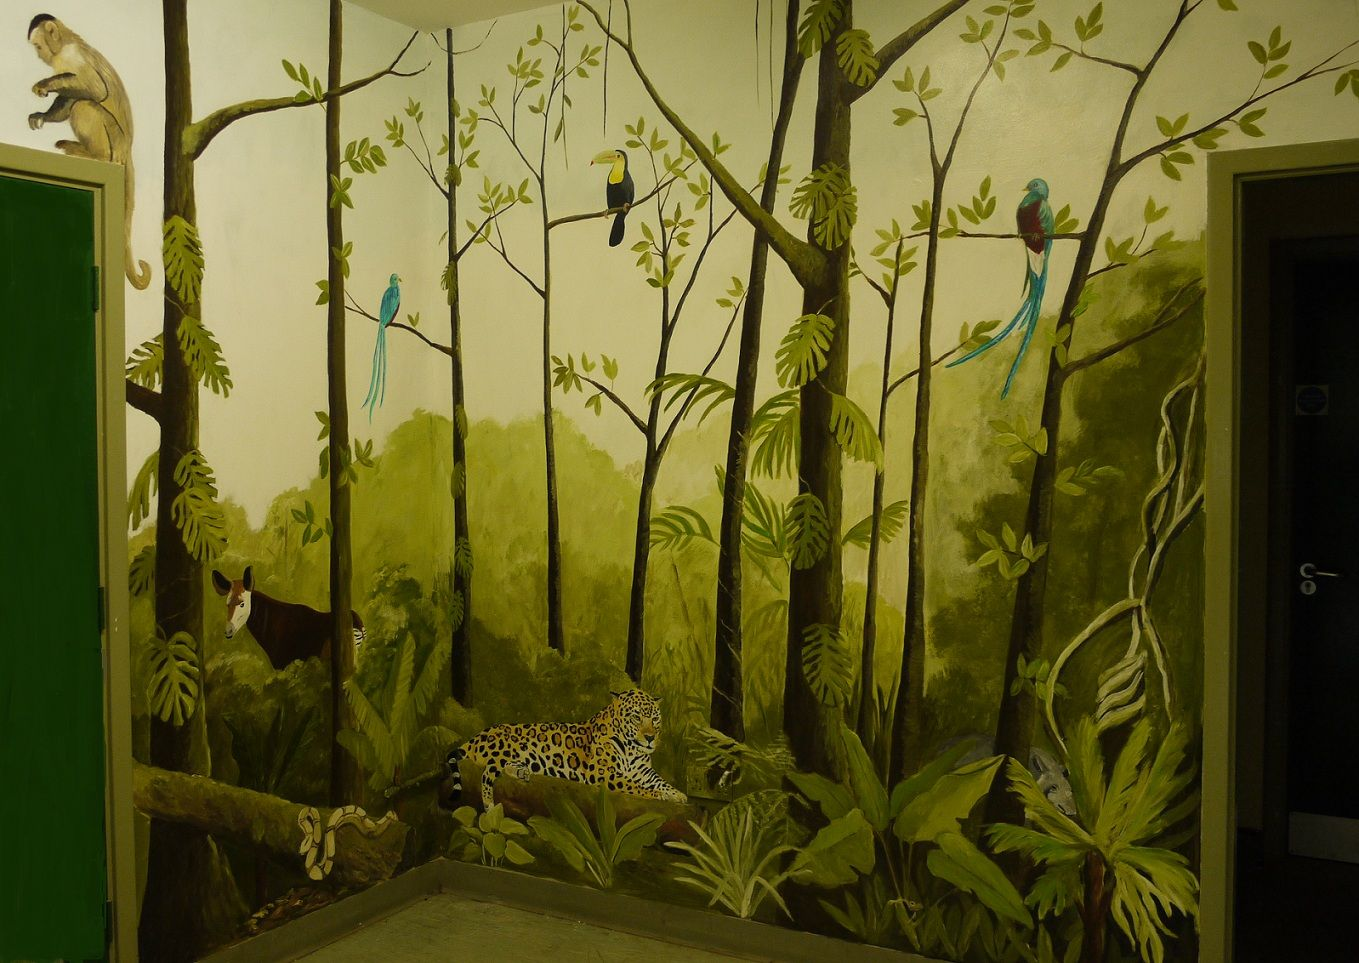 Jungle mural i love the trees and foliage in this one i could go beautiful jungle tree nursery wall murals art for kids bedroom decorating ideas nursery wall murals best decoration for kids room design amipublicfo Gallery